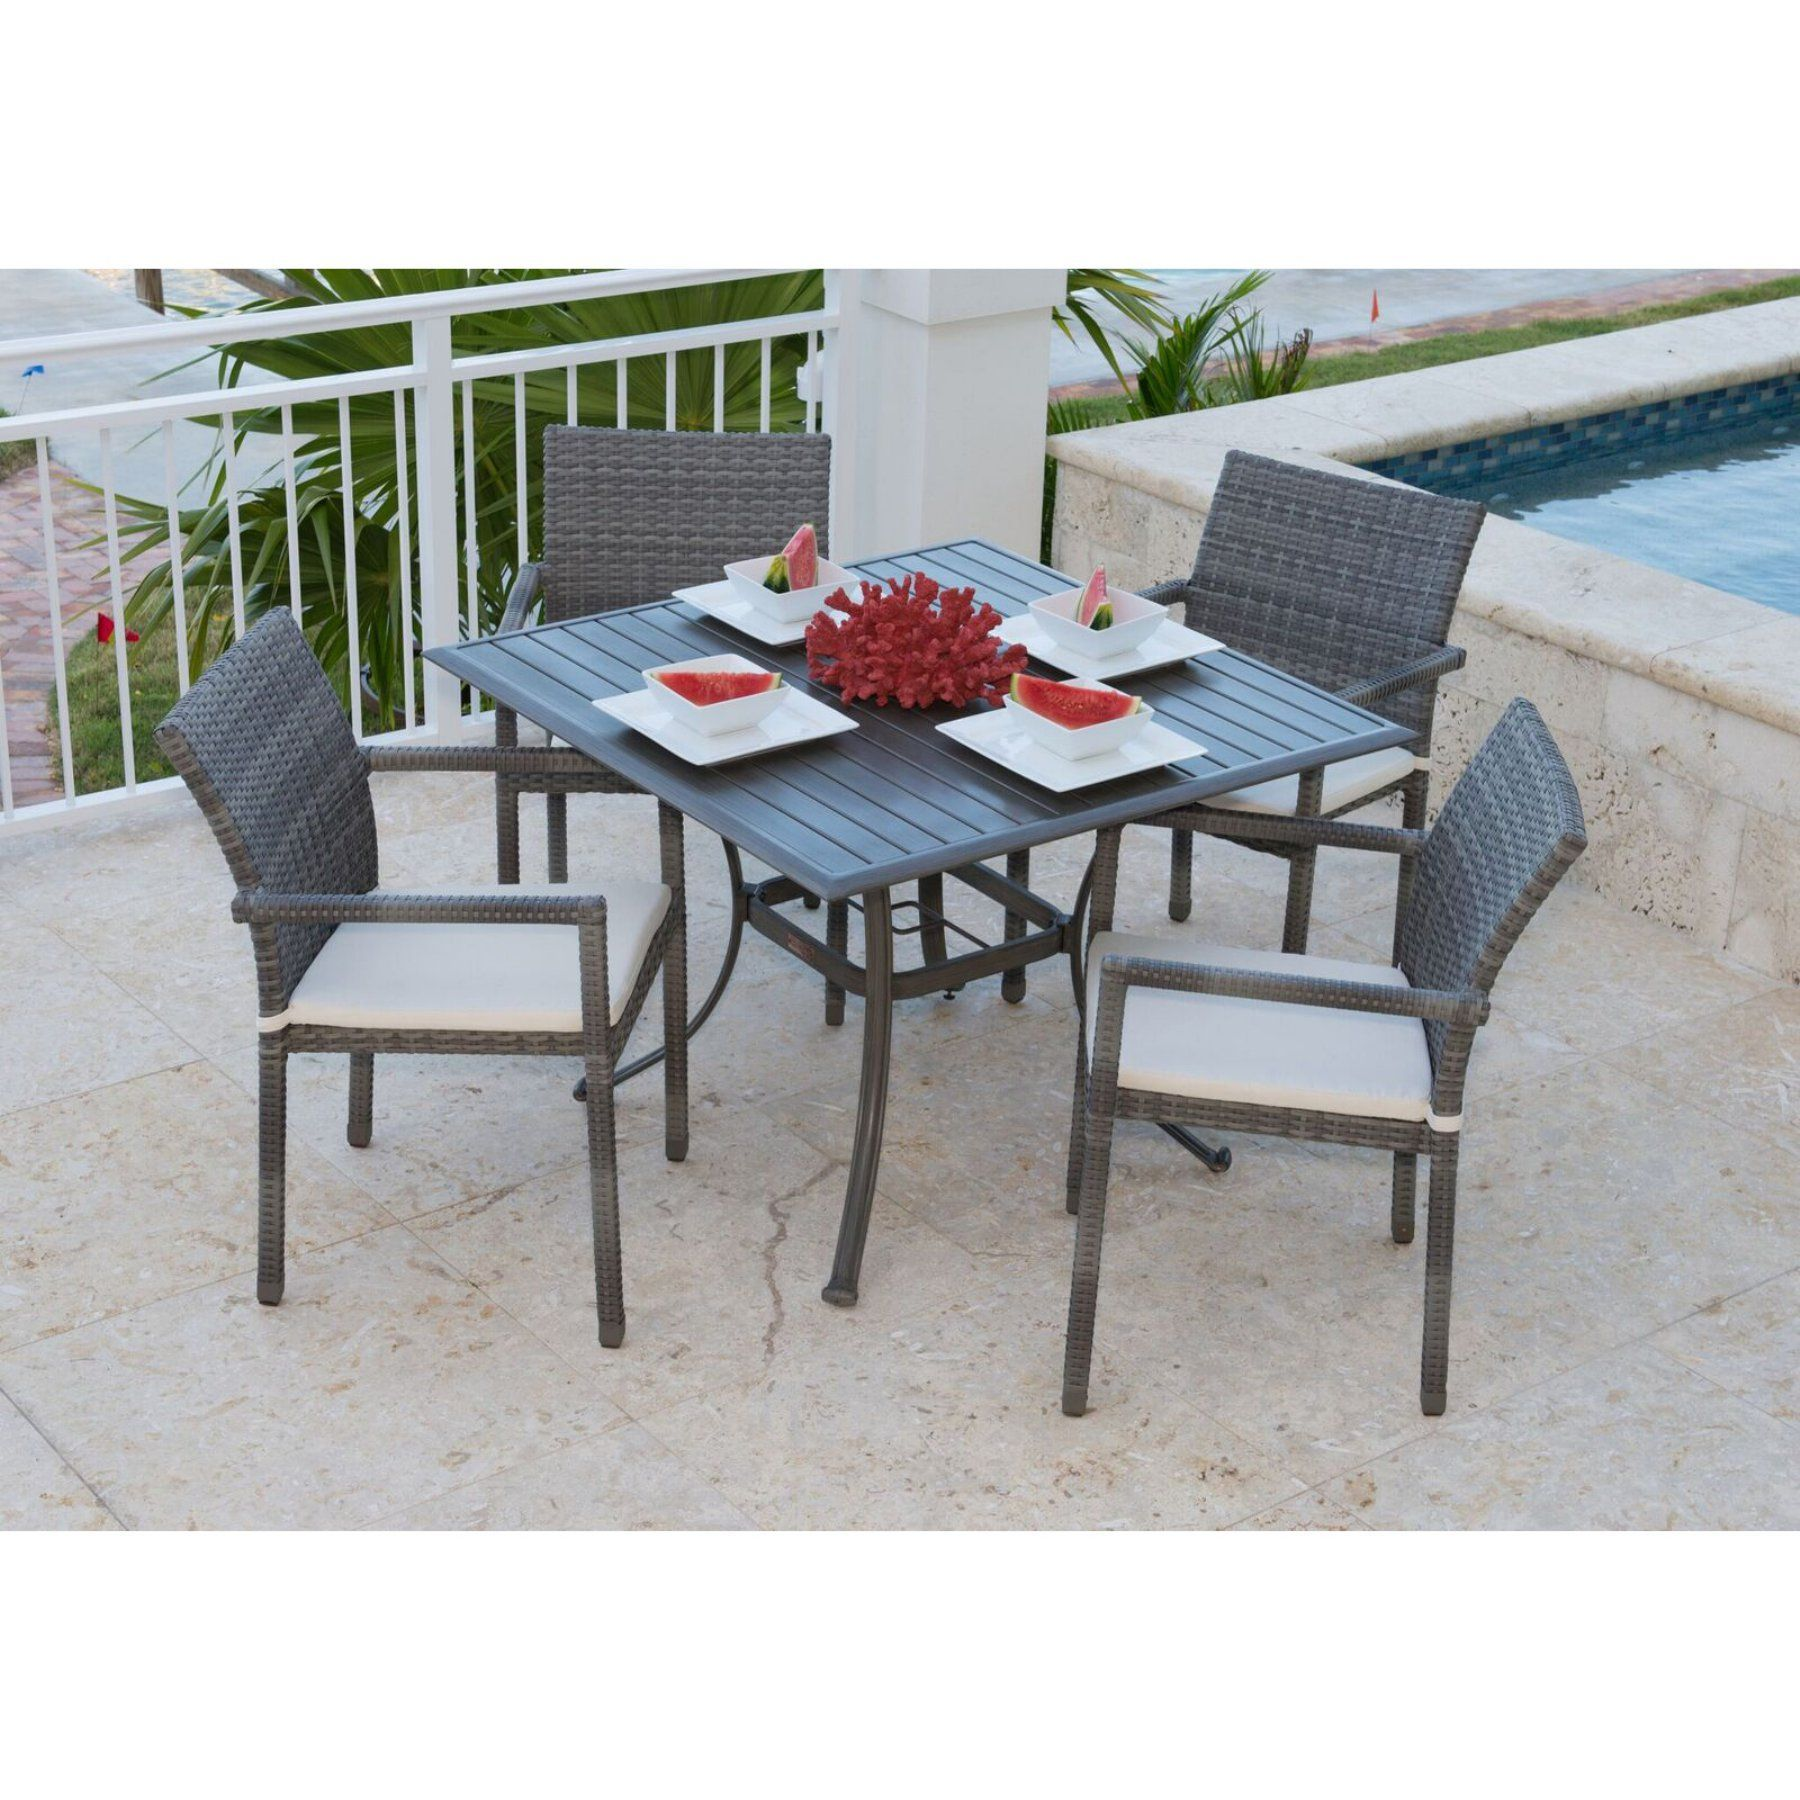 Patio Furniture Near Newport Beach: Outdoor Panama Jack Newport Beach 5 Piece Wicker Patio